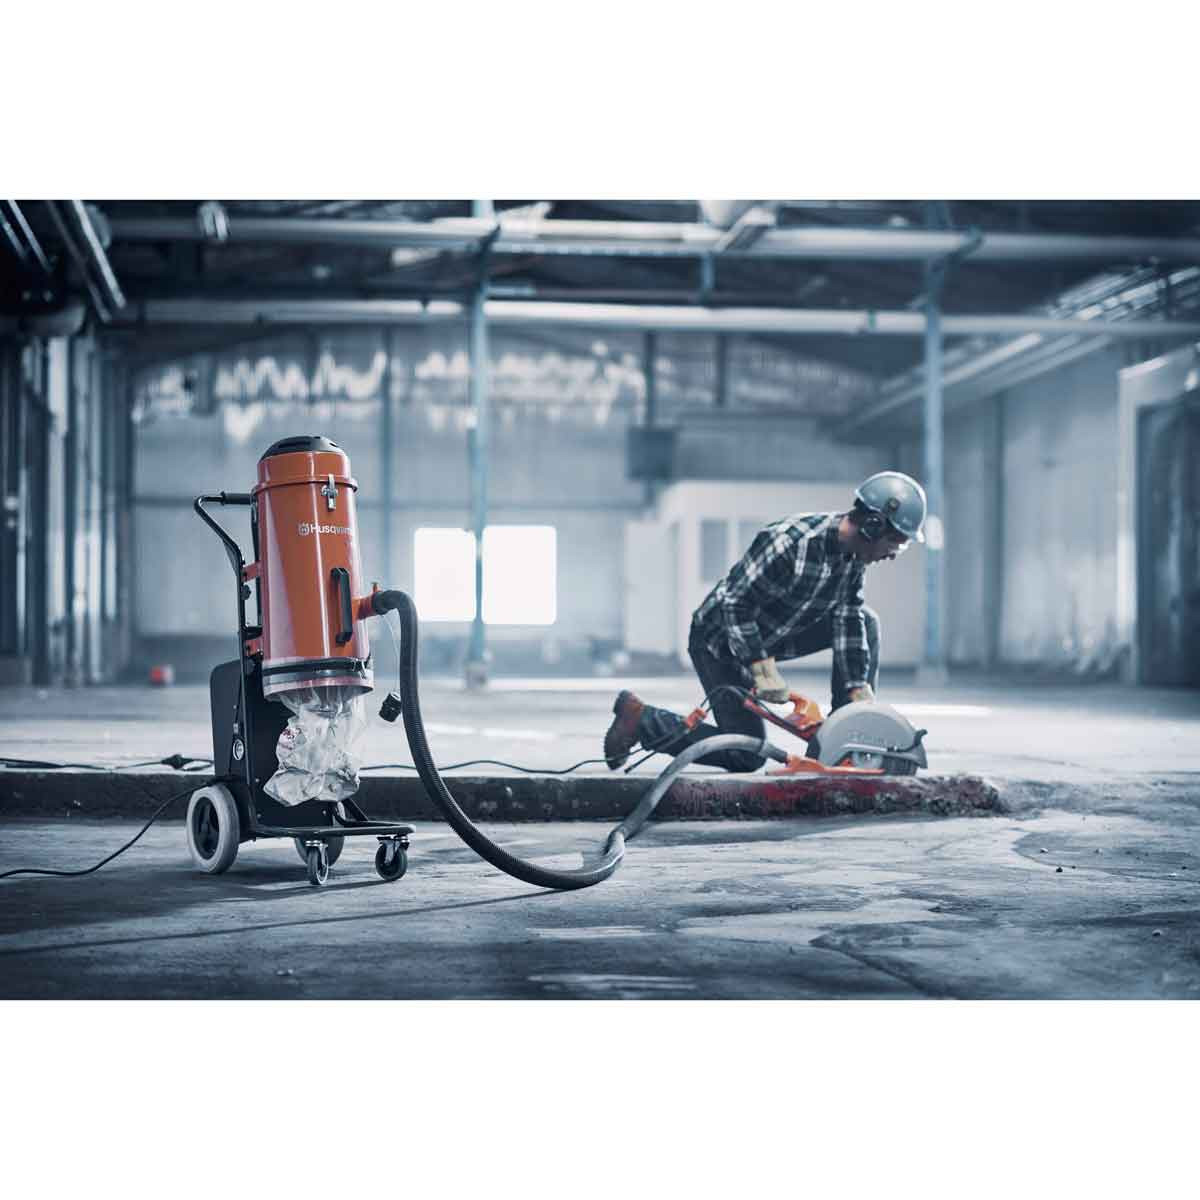 Electric Power Cutter with S13 HEPA Dust Extractor